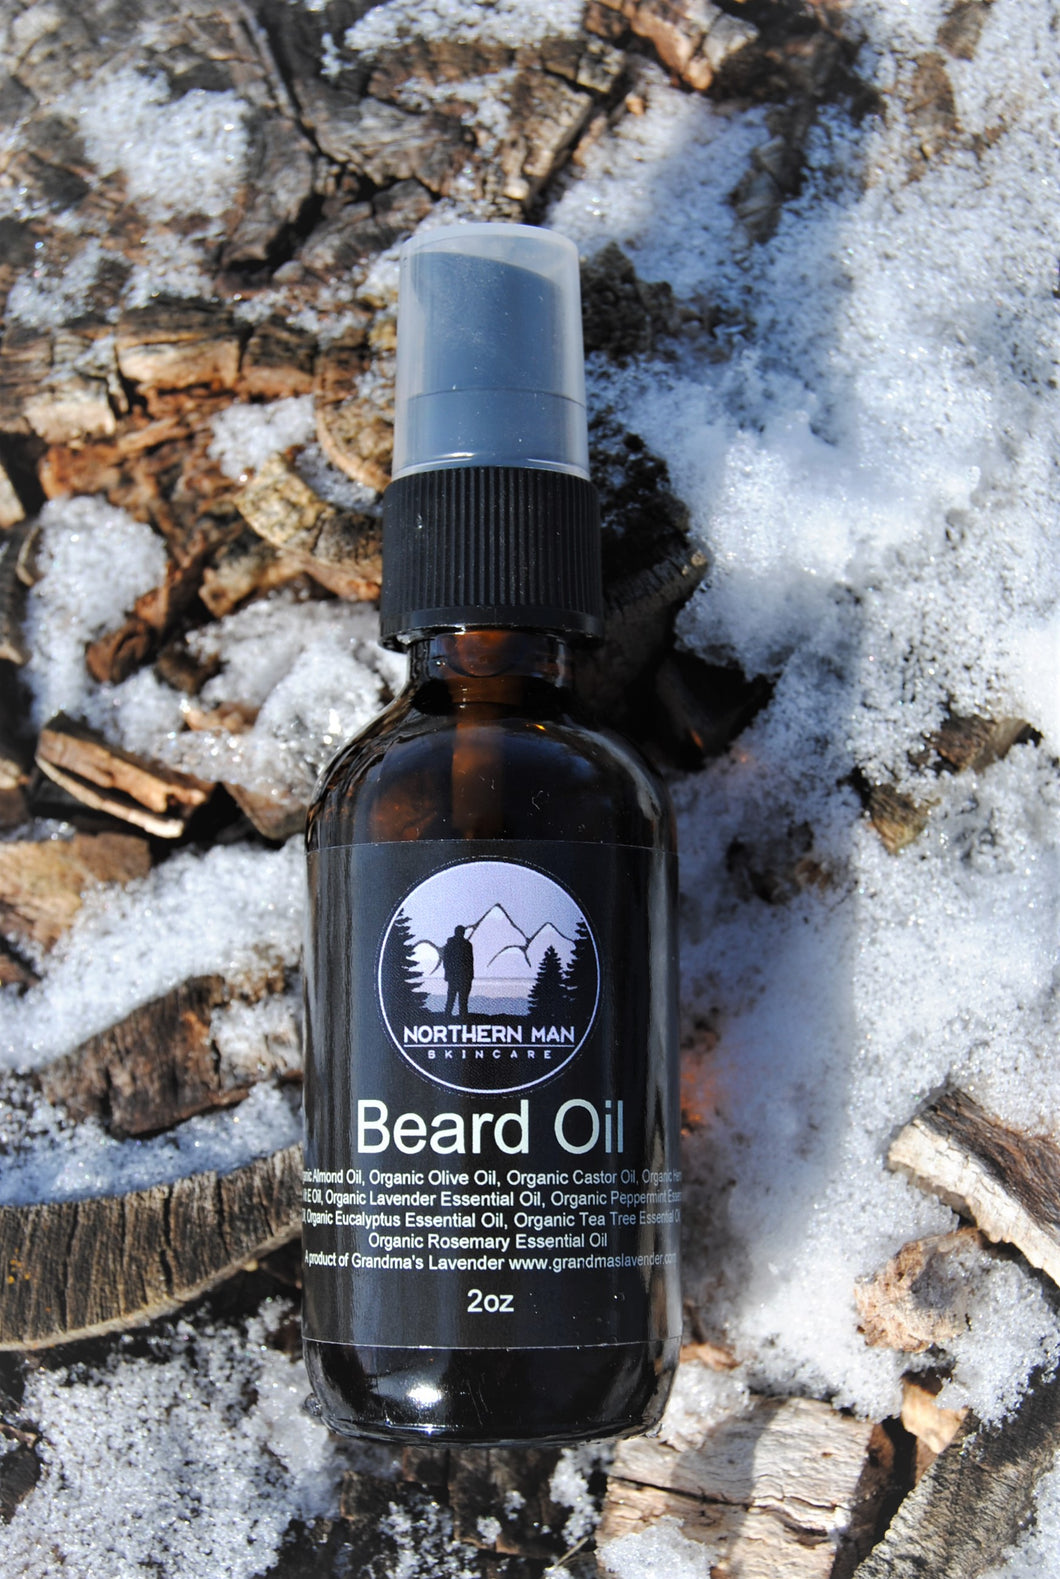 Northern Man Beard Oil - Grandma's Lavender